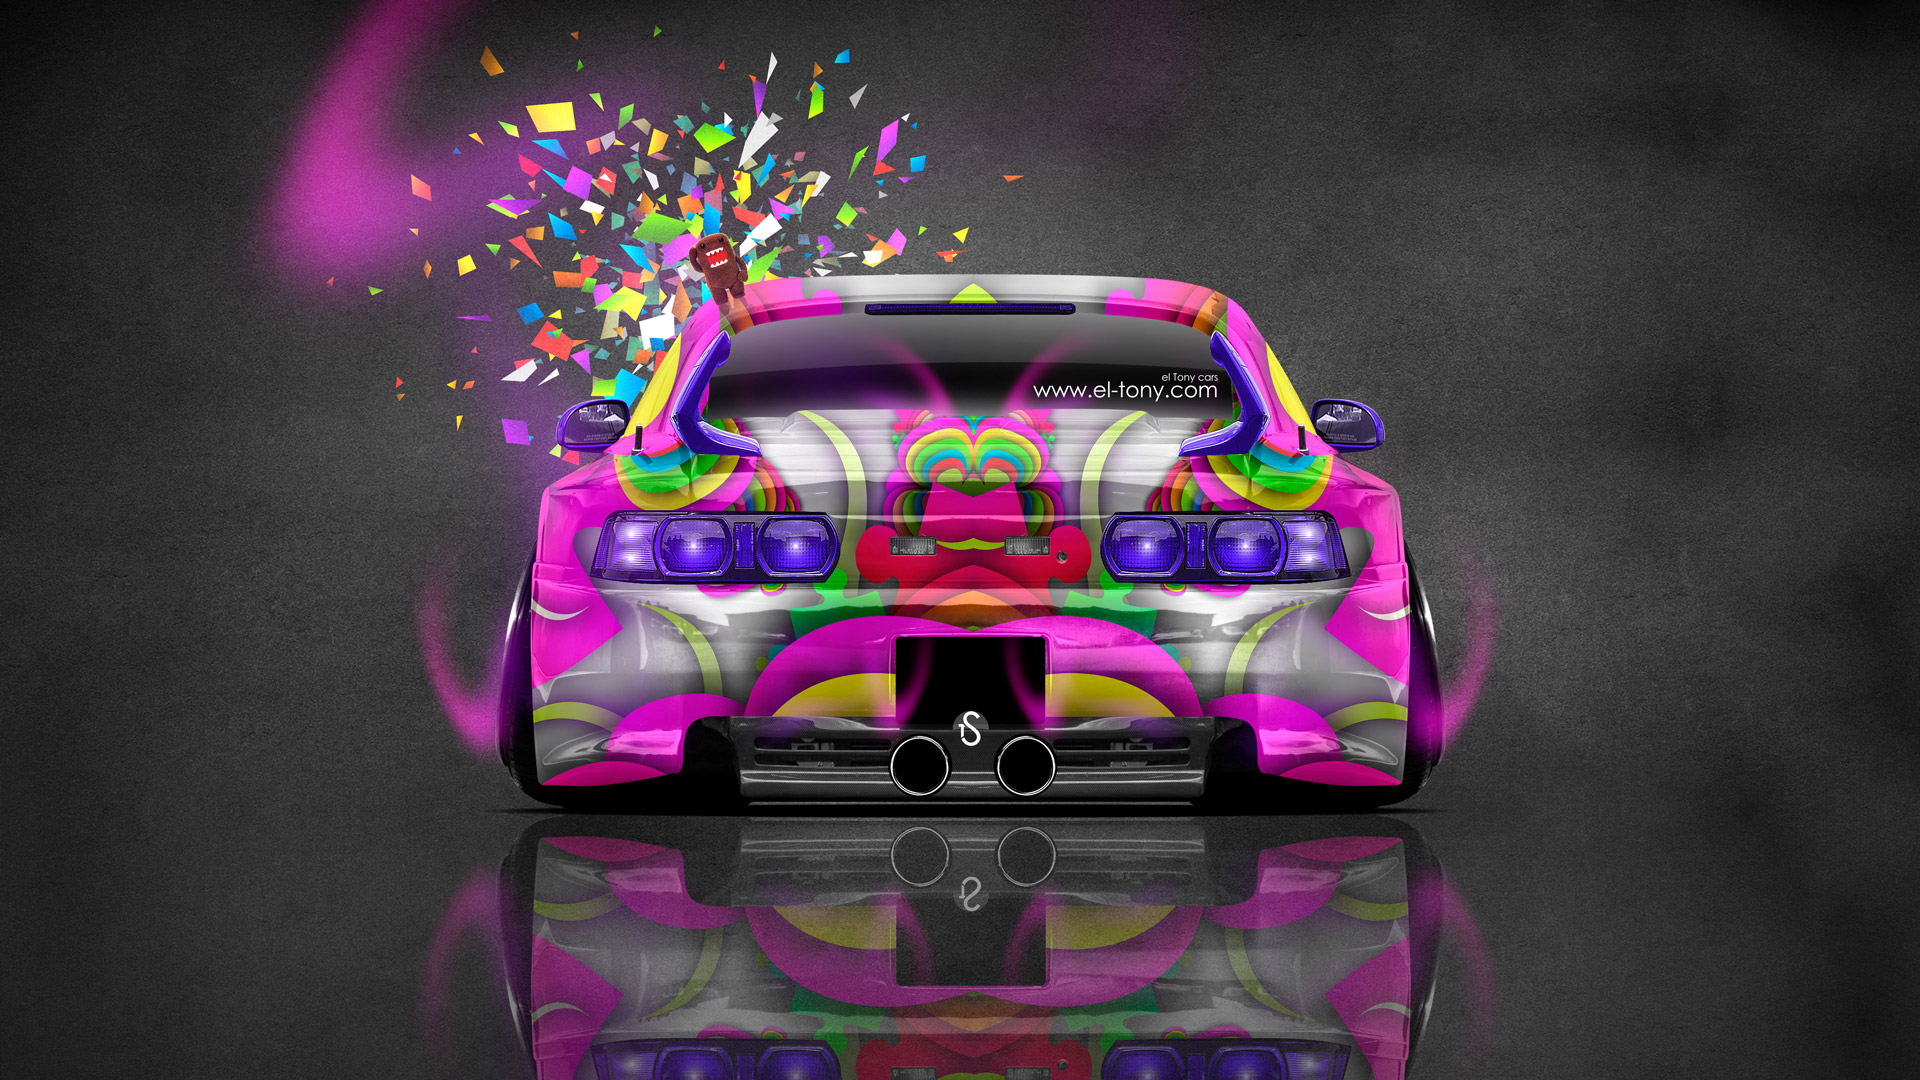 Toyota-MR2-Back-JDM-Style-Domo-Kun-Toy-Car-2014-HD-Wallpapers-design-by-Tony-Kokhan-[www.el-tony.com]